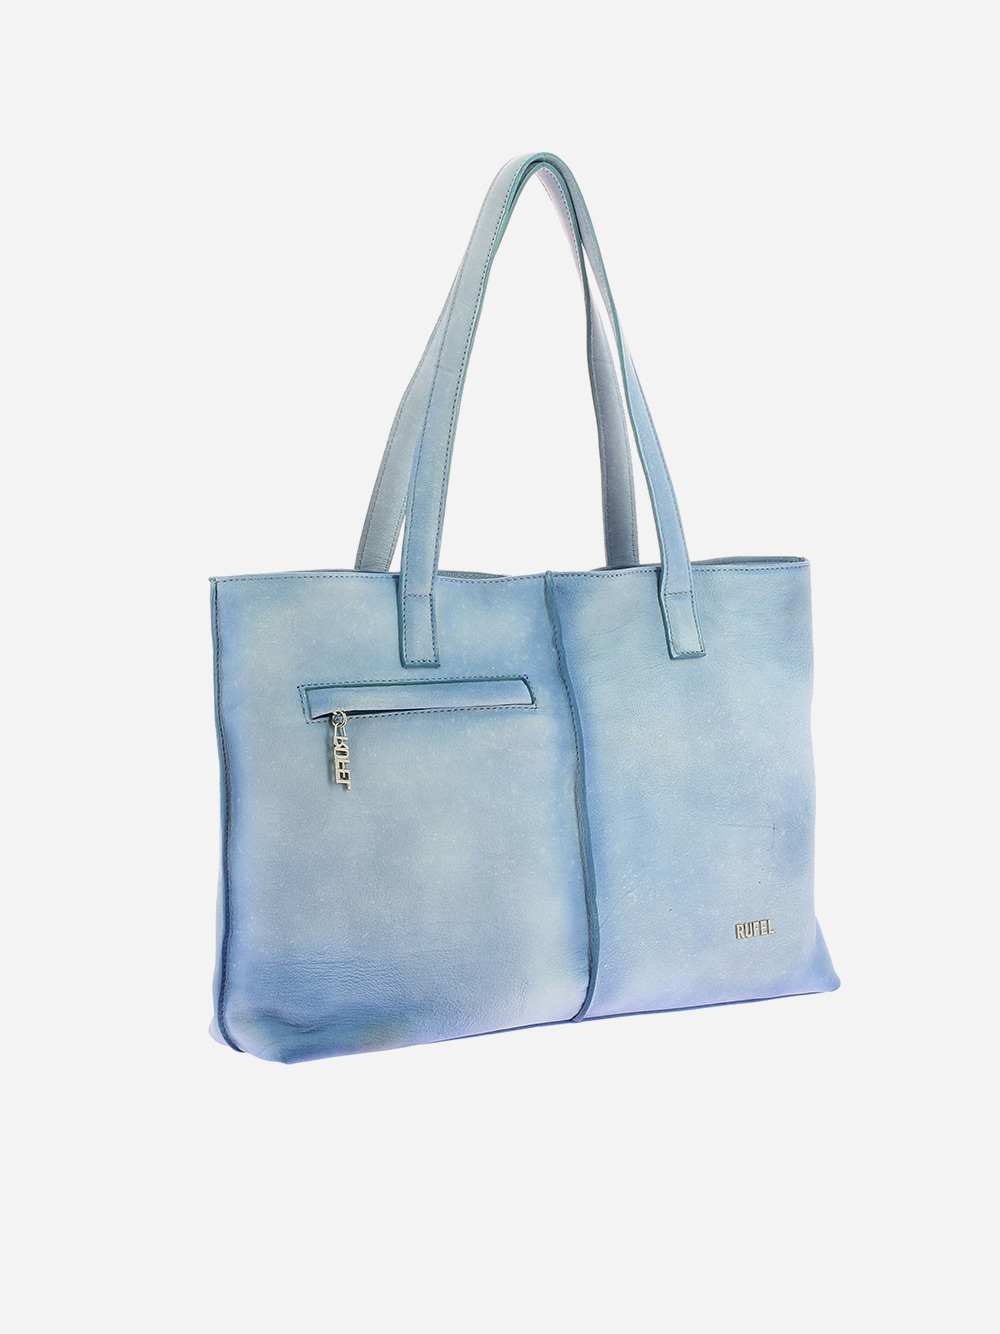 Blue Vintage Shoulder Bag